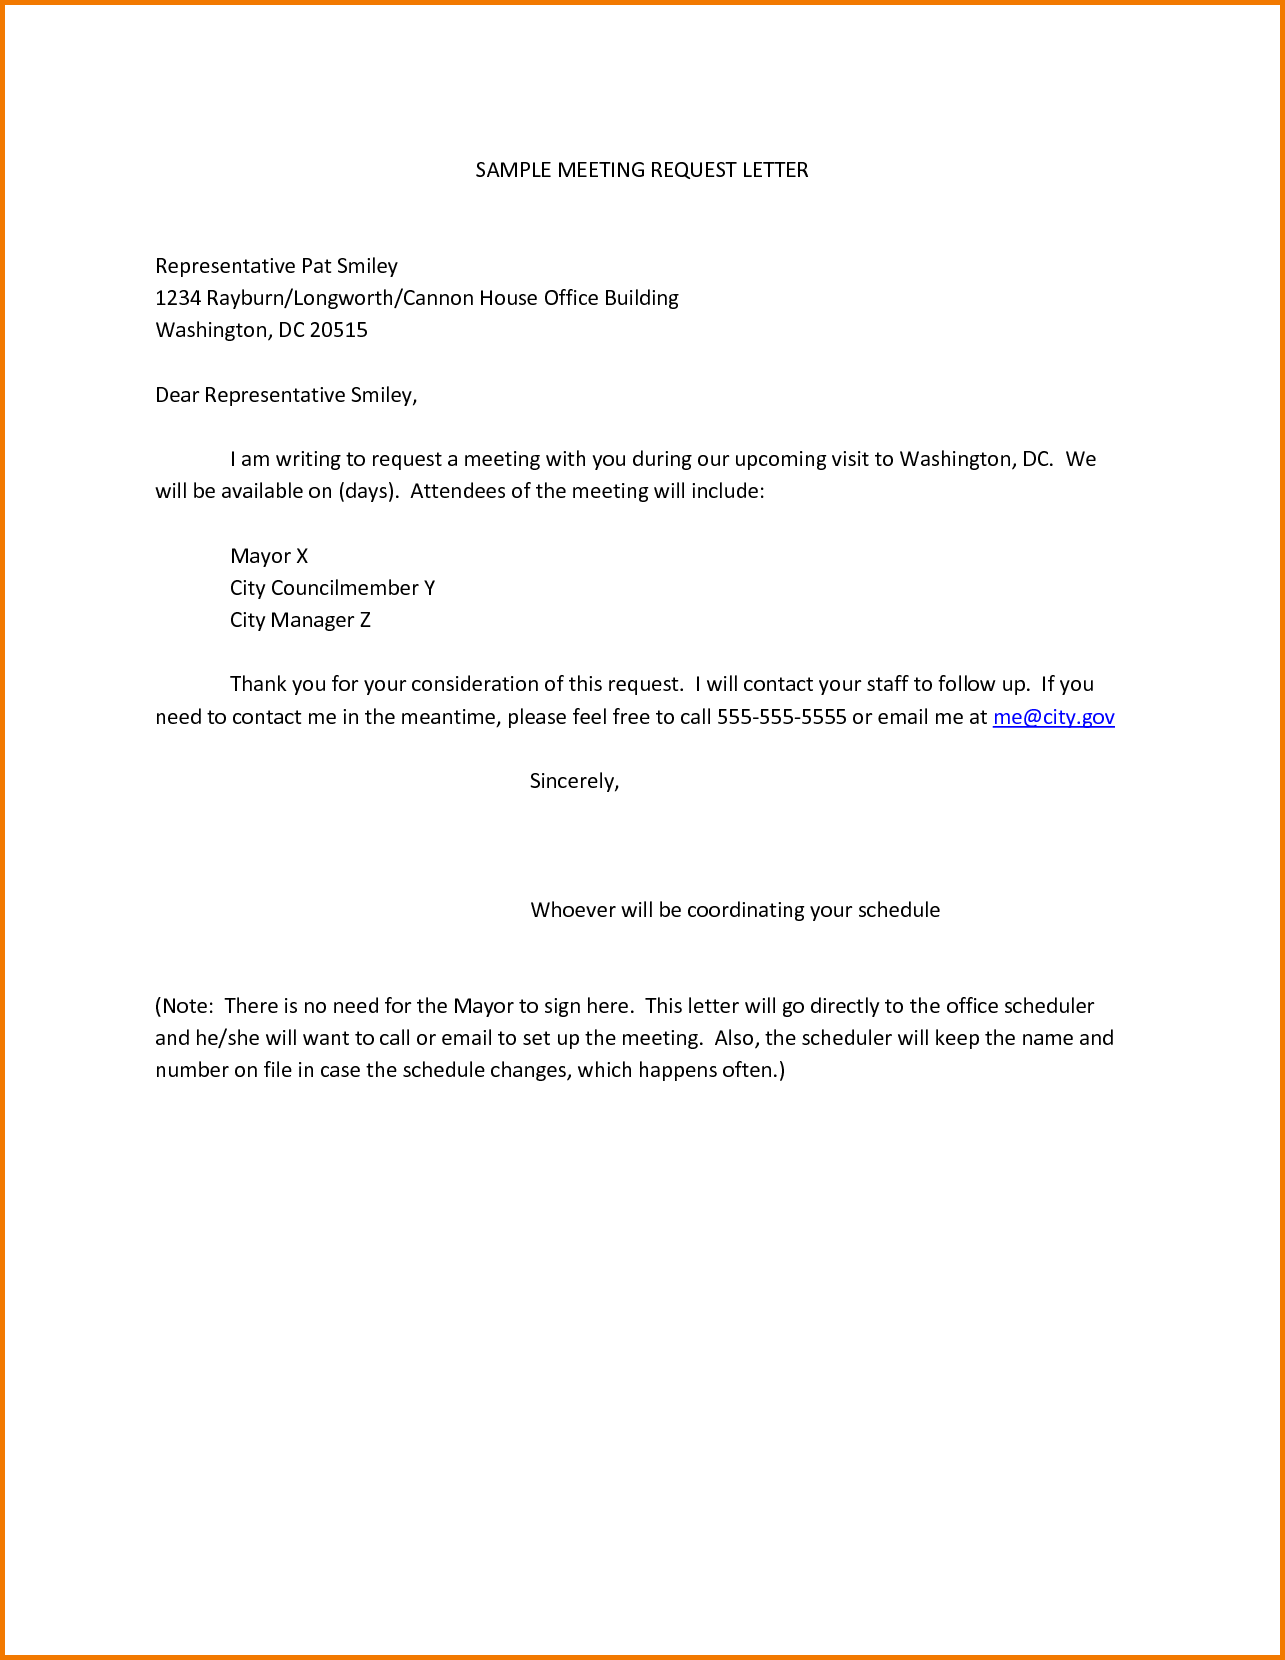 Sample Letter Format For Meeting Request. SAMPLE MEETING REQUEST LETTER Representative Pat Smiley Rayburn